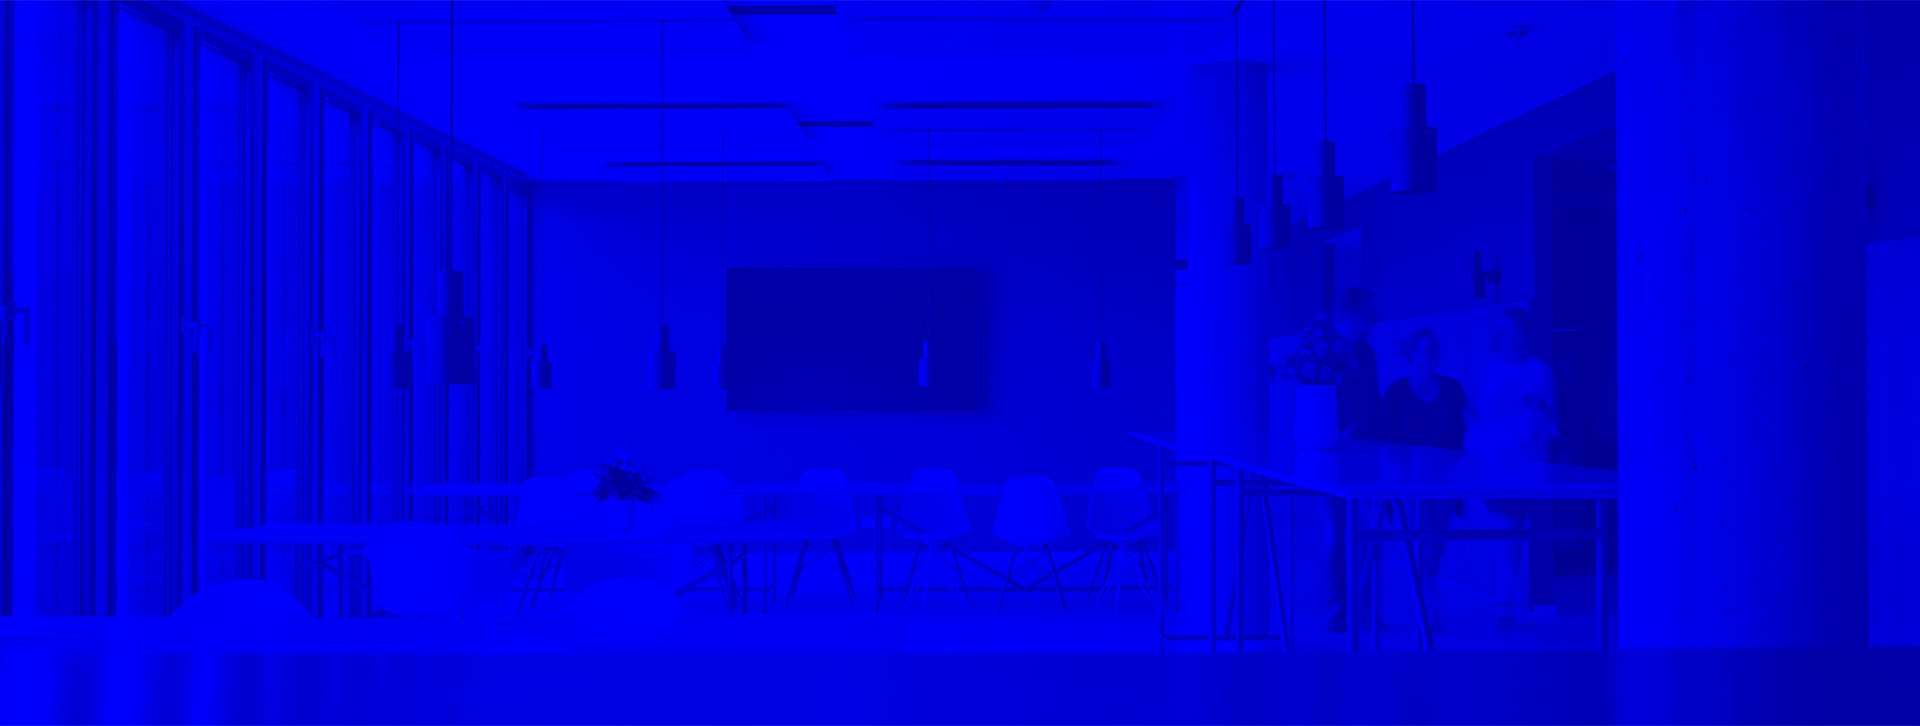 Room with white tables and chairs, on the right side three people are walking through the picture, blue filter